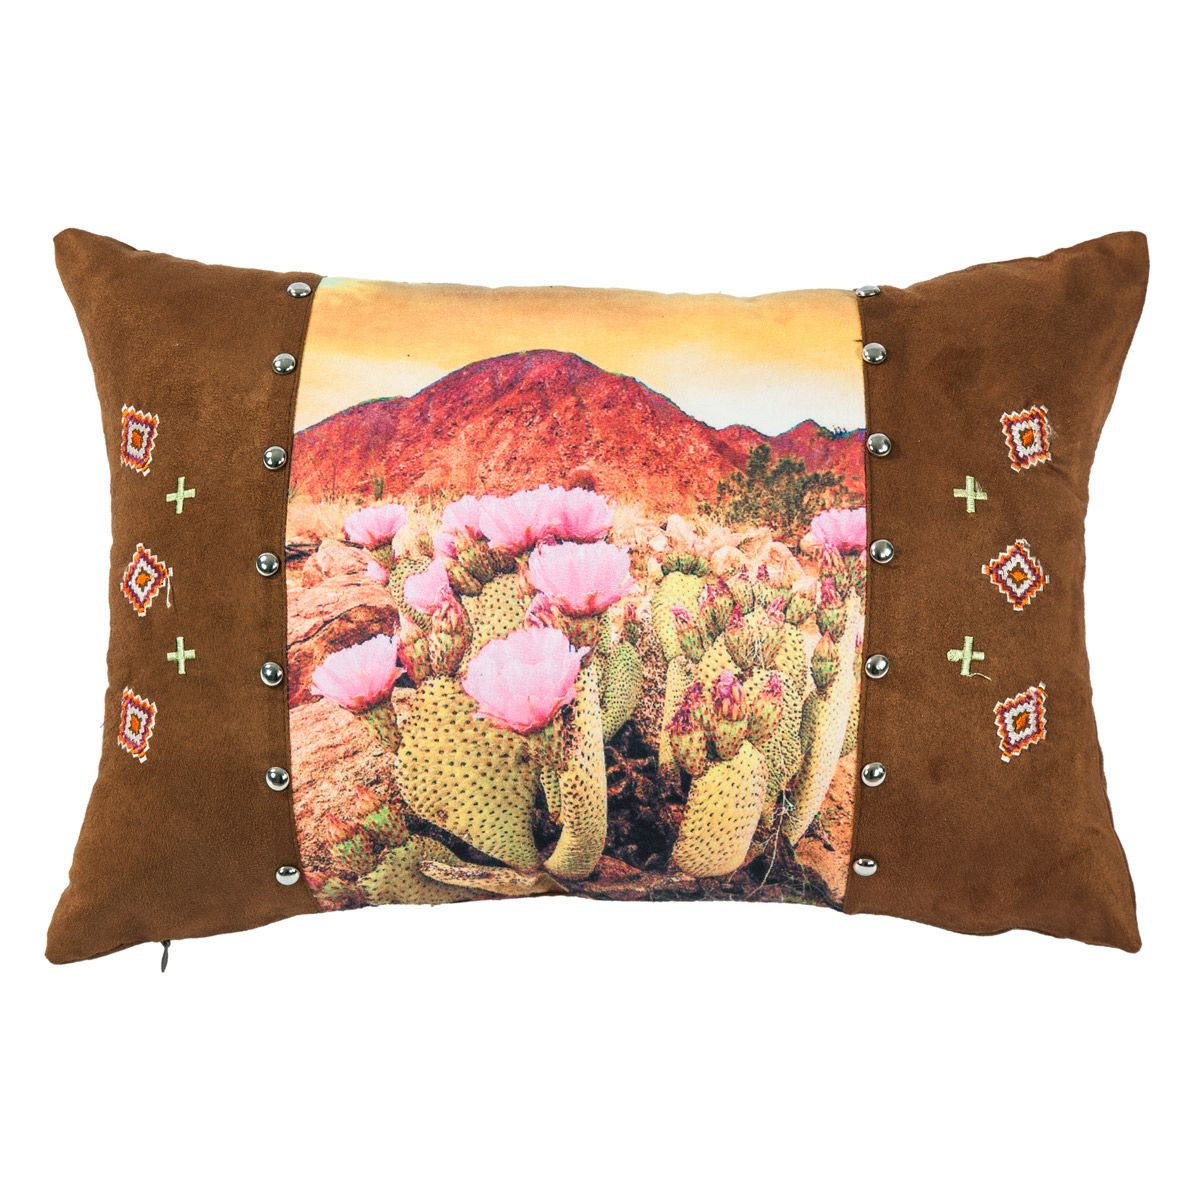 Desert Flowers Pillow with Stud Details